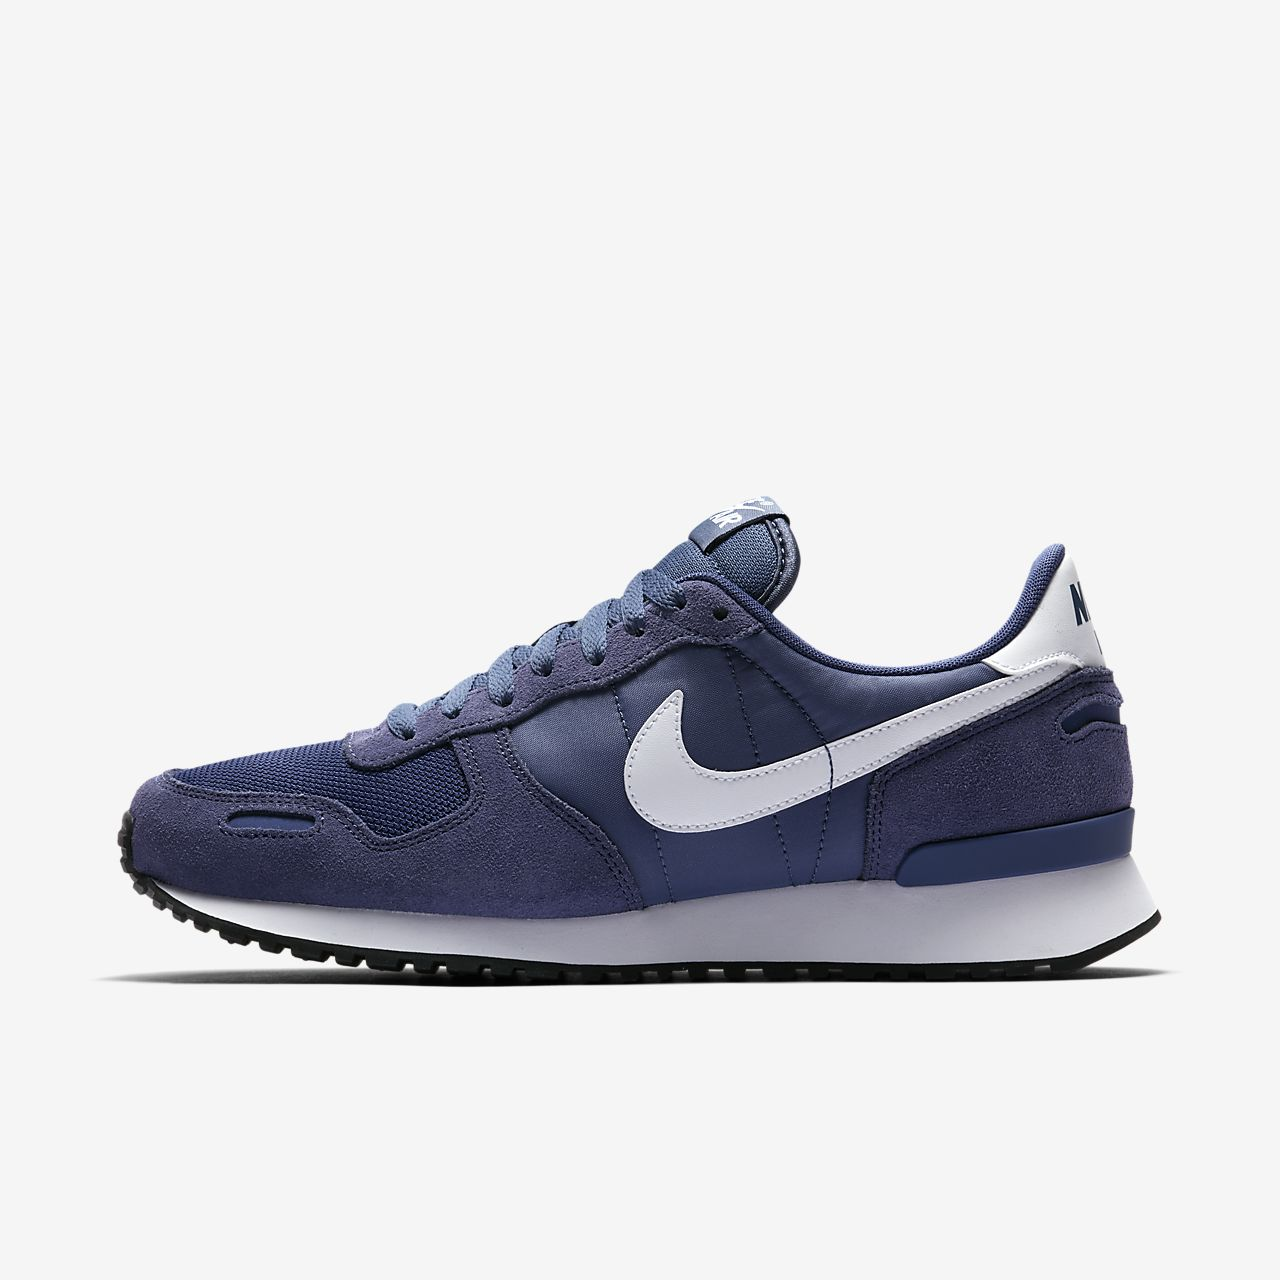 new arrival ff45e cb79f ... Chaussure Nike Air Vortex pour Homme